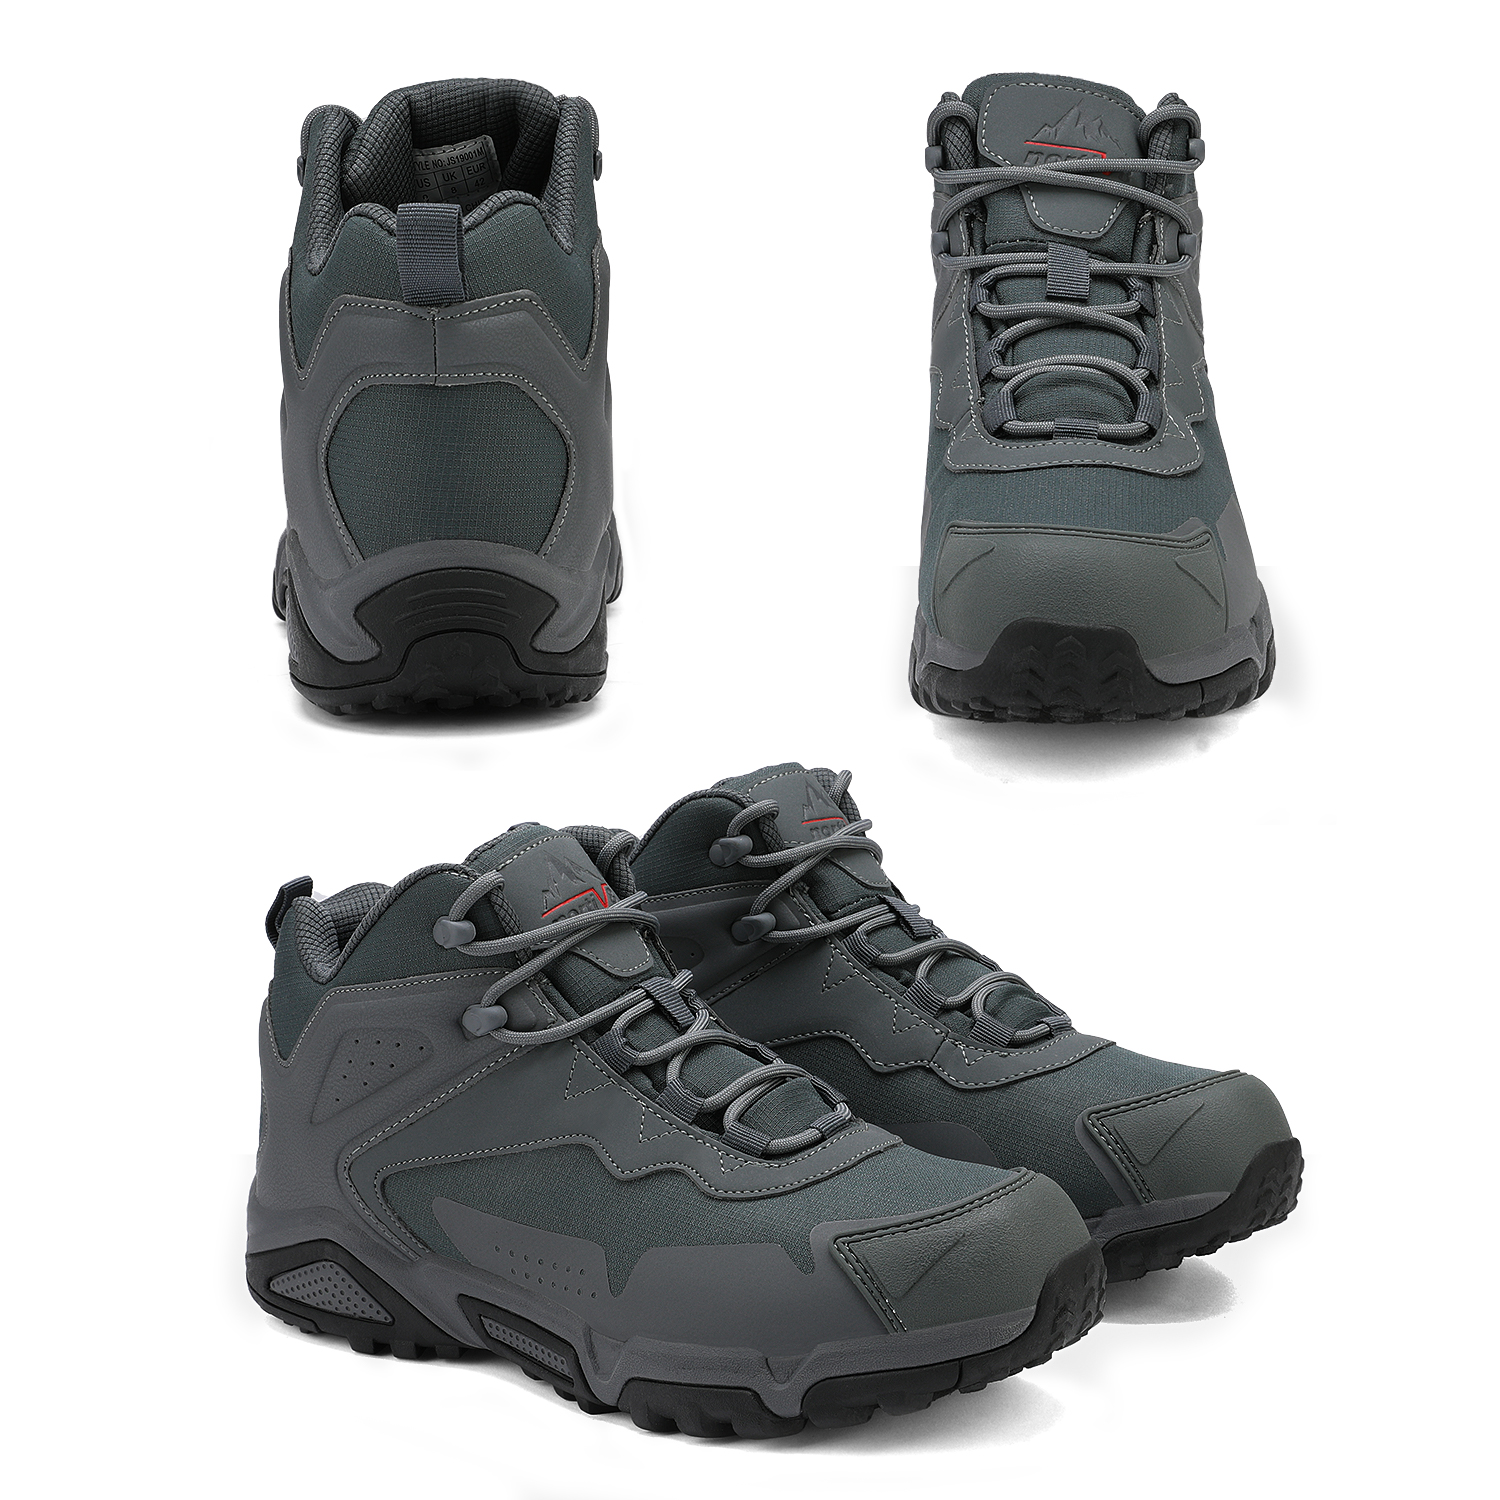 NORTIV-8-Men-039-s-Ankle-Waterproof-Hiking-Boots-Lightweight-Backpacking-Work-Shoes thumbnail 20